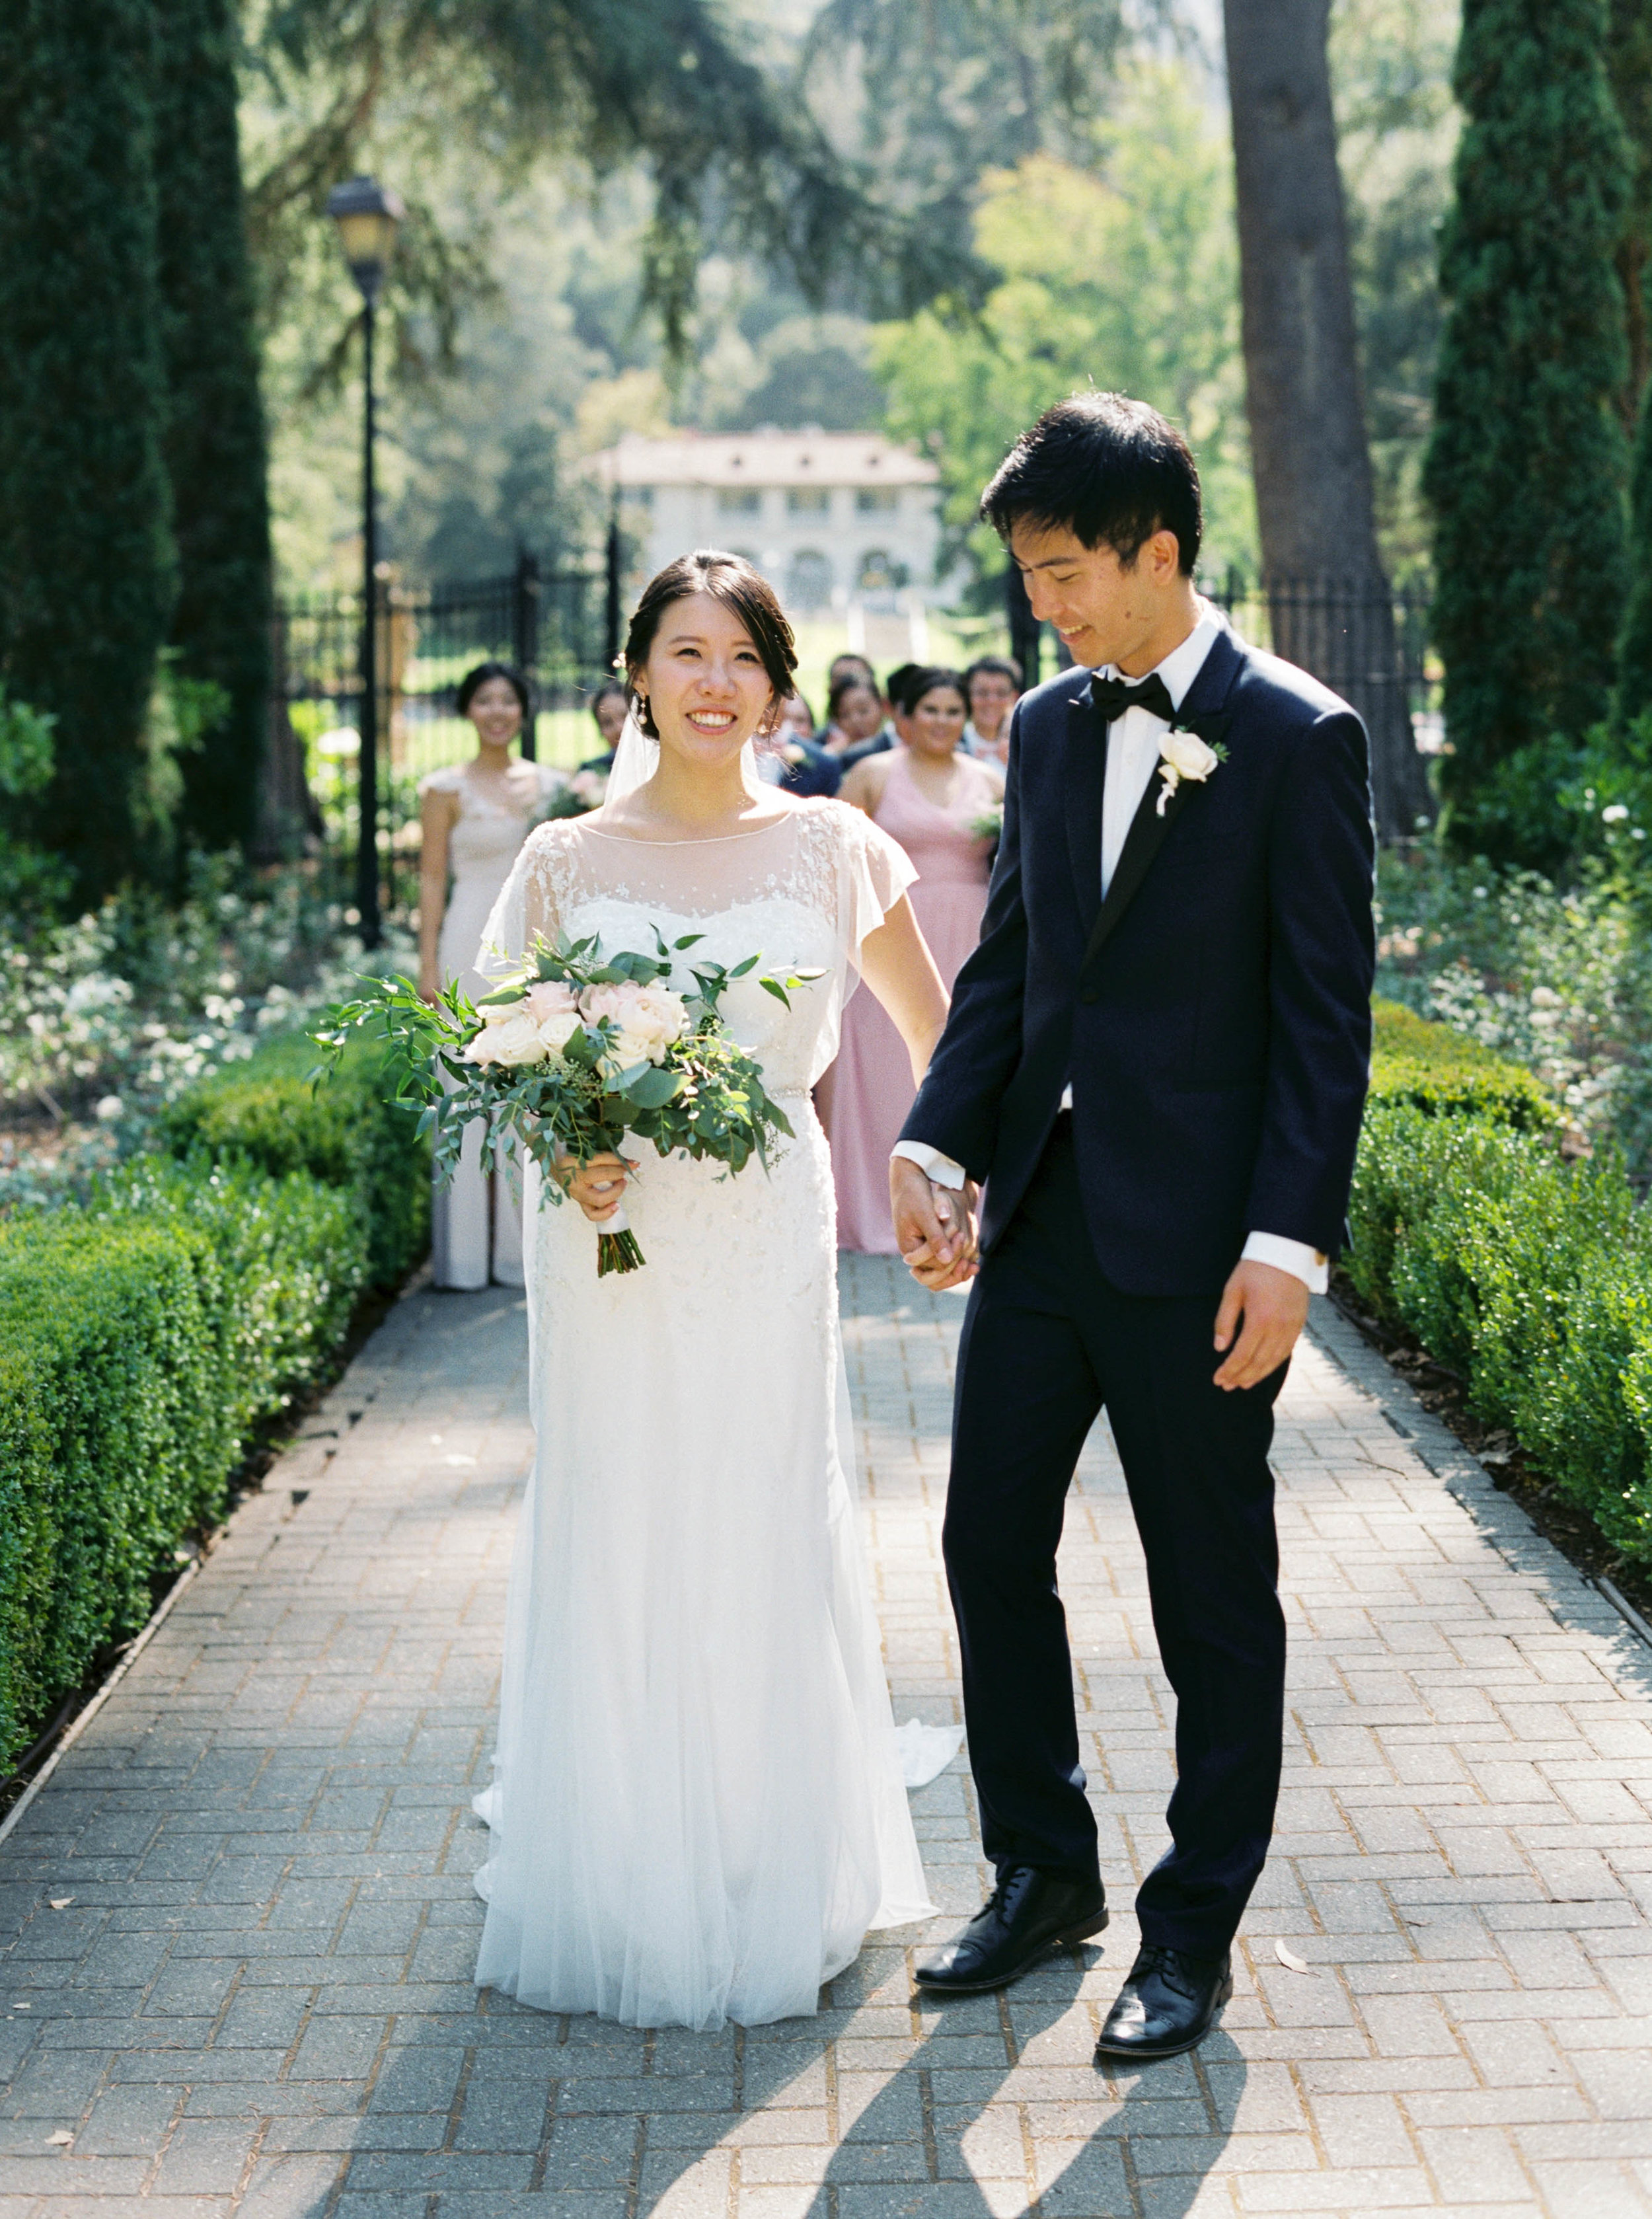 Villa_Montalvo_Wedding_Photographer_Videographer_San_Francisco072.jpg